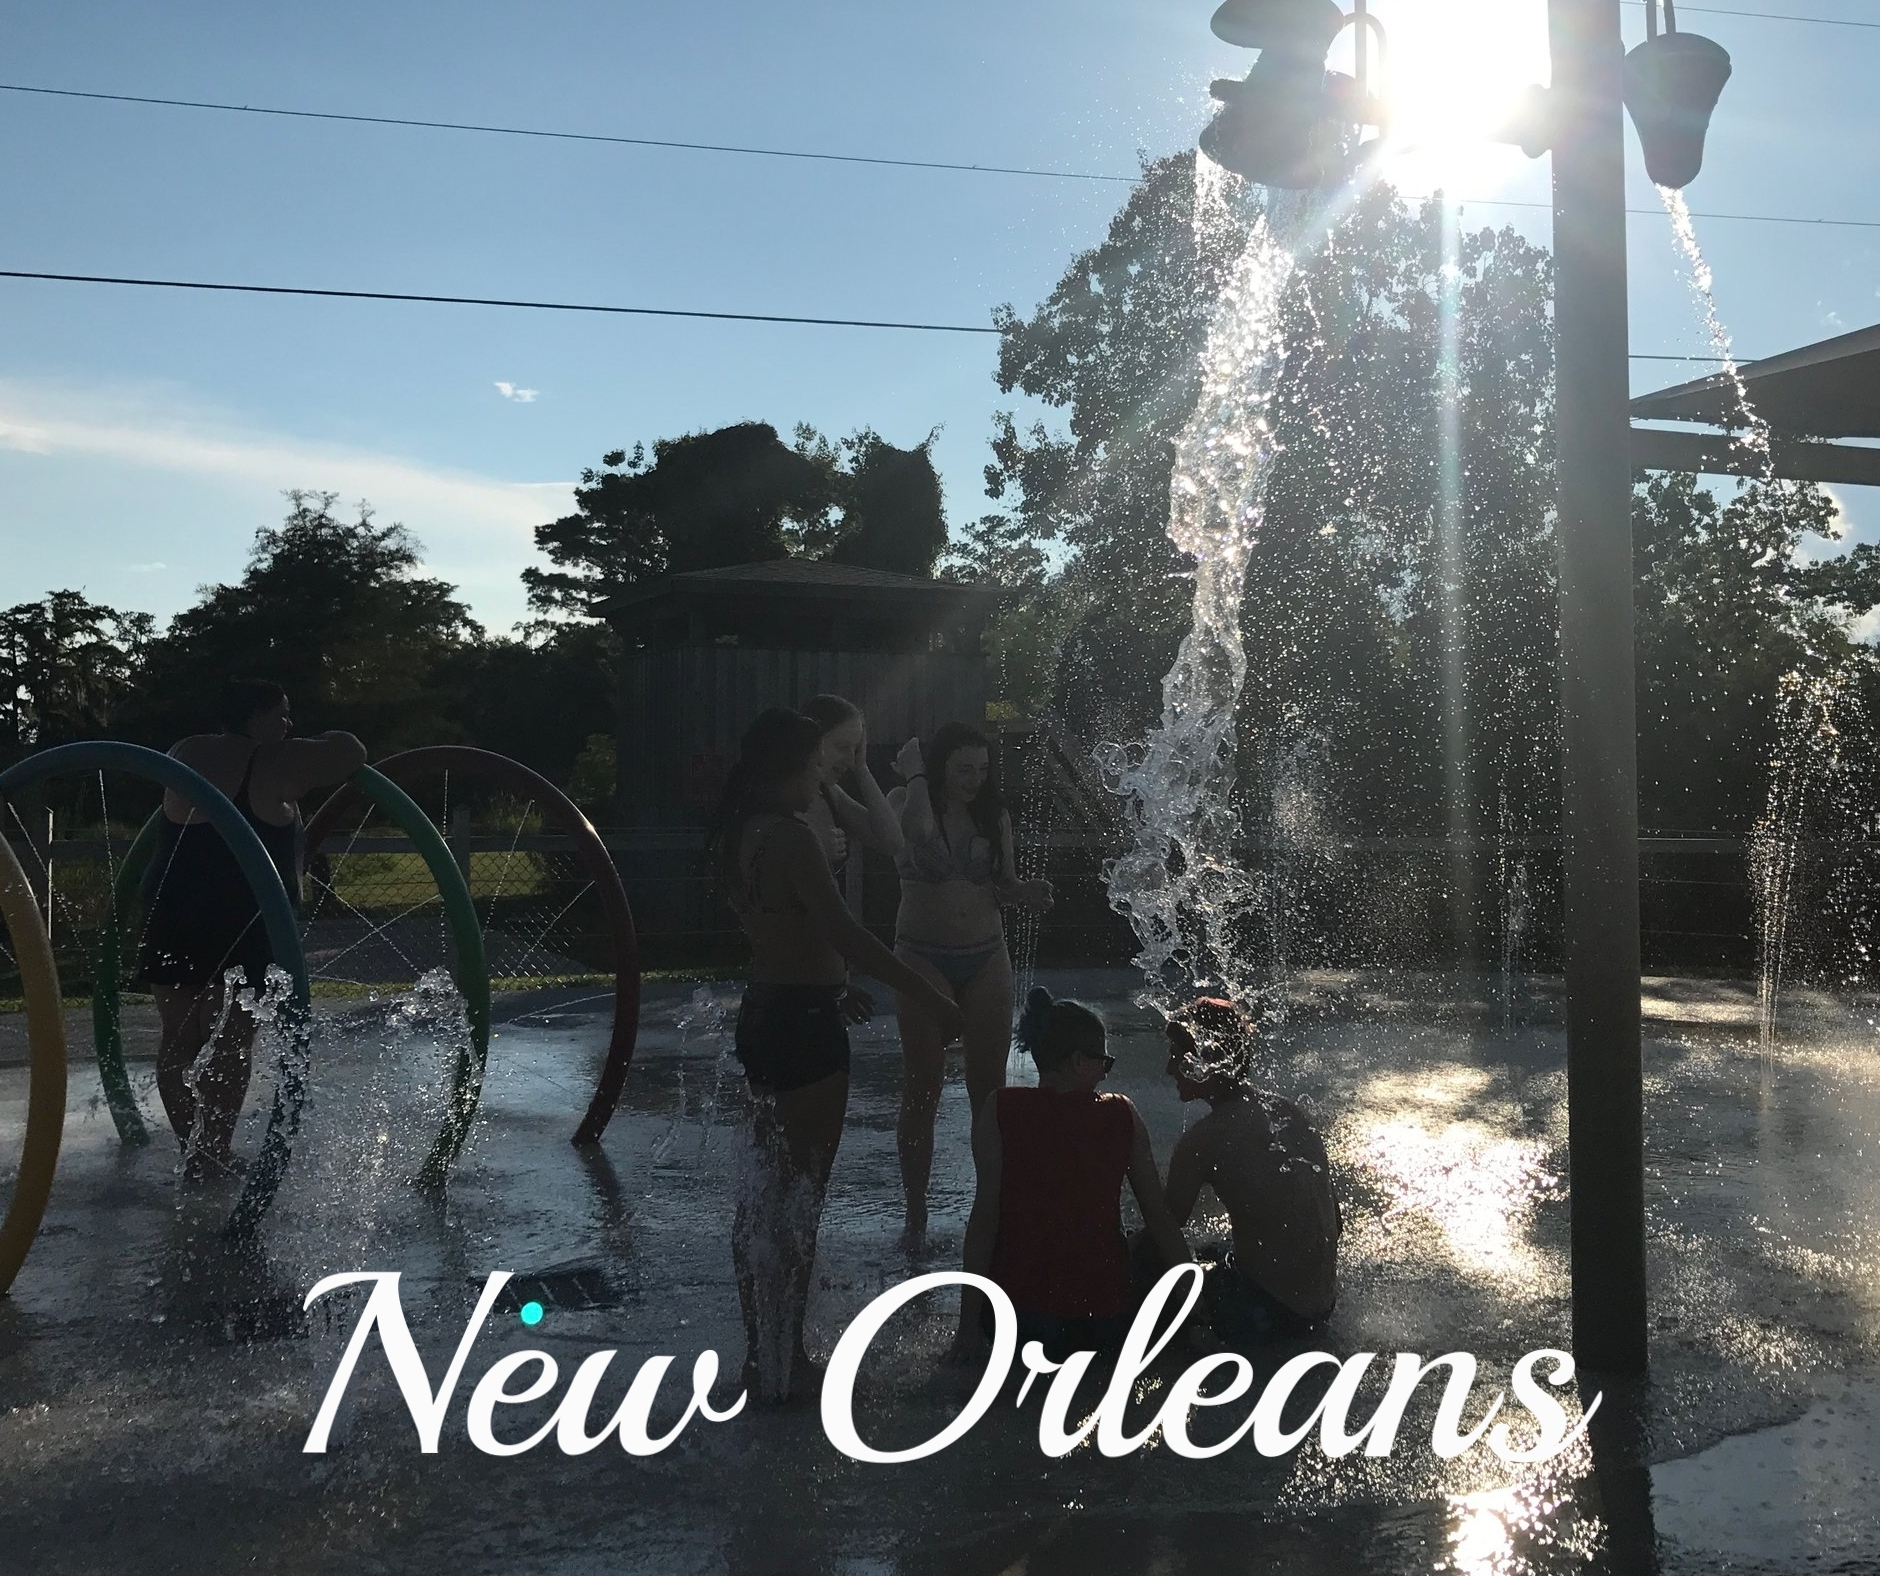 Eclectic New Orleans!